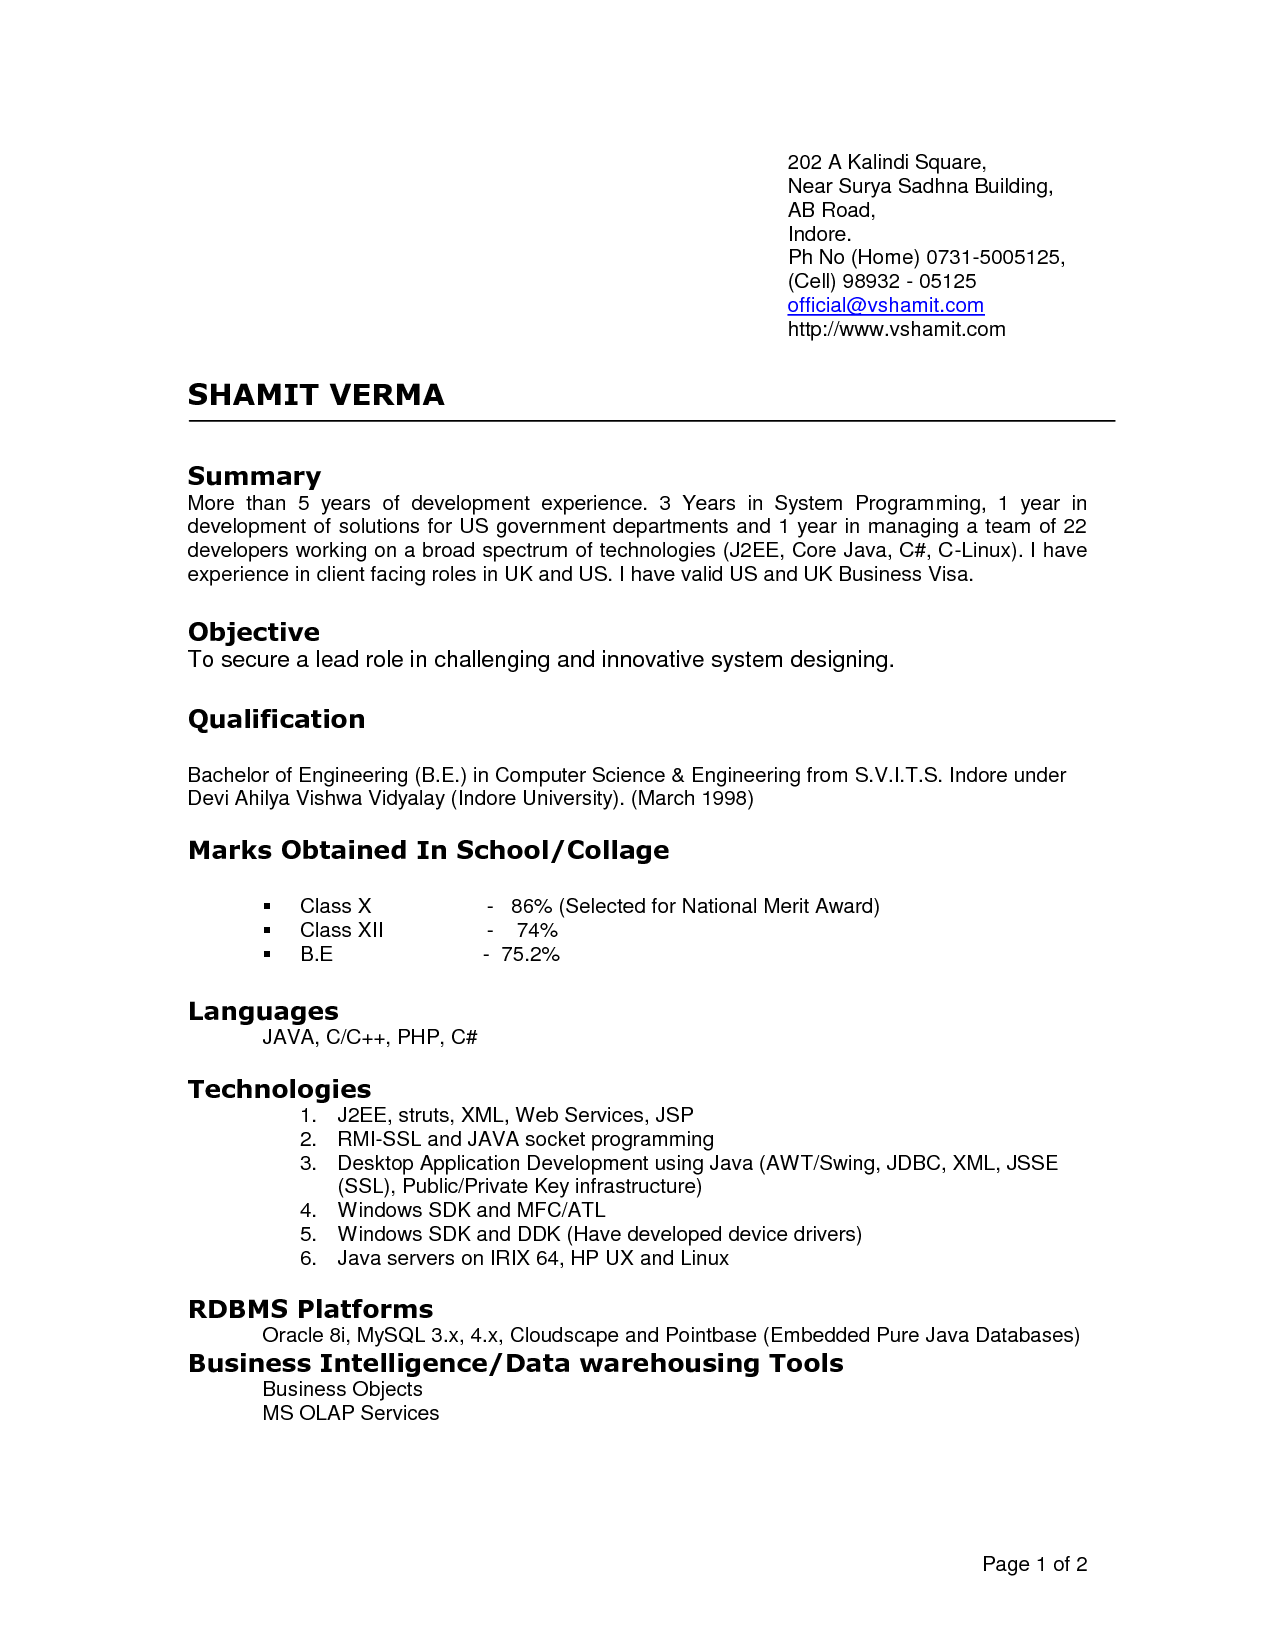 most recent resume format Leon.escapers.co